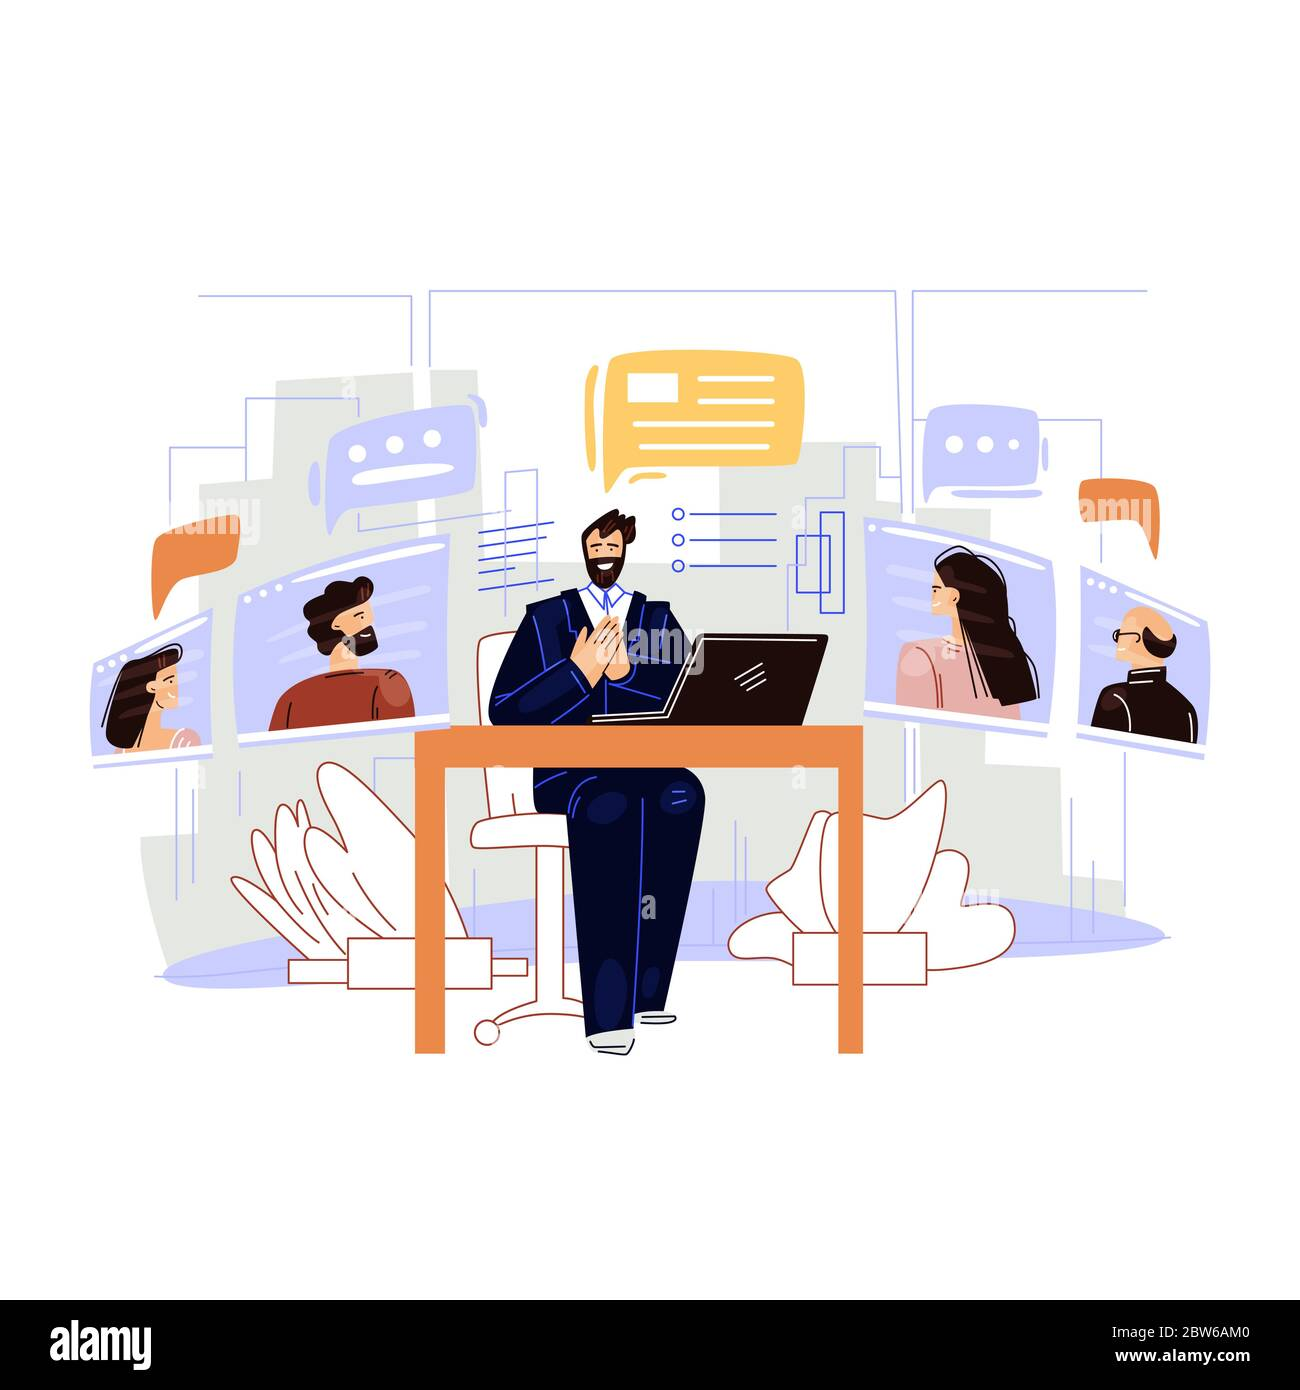 Business video conference vector flat illustration. Man businessman character sitting in office, making work online remote meeting with Colleagues Stock Vector